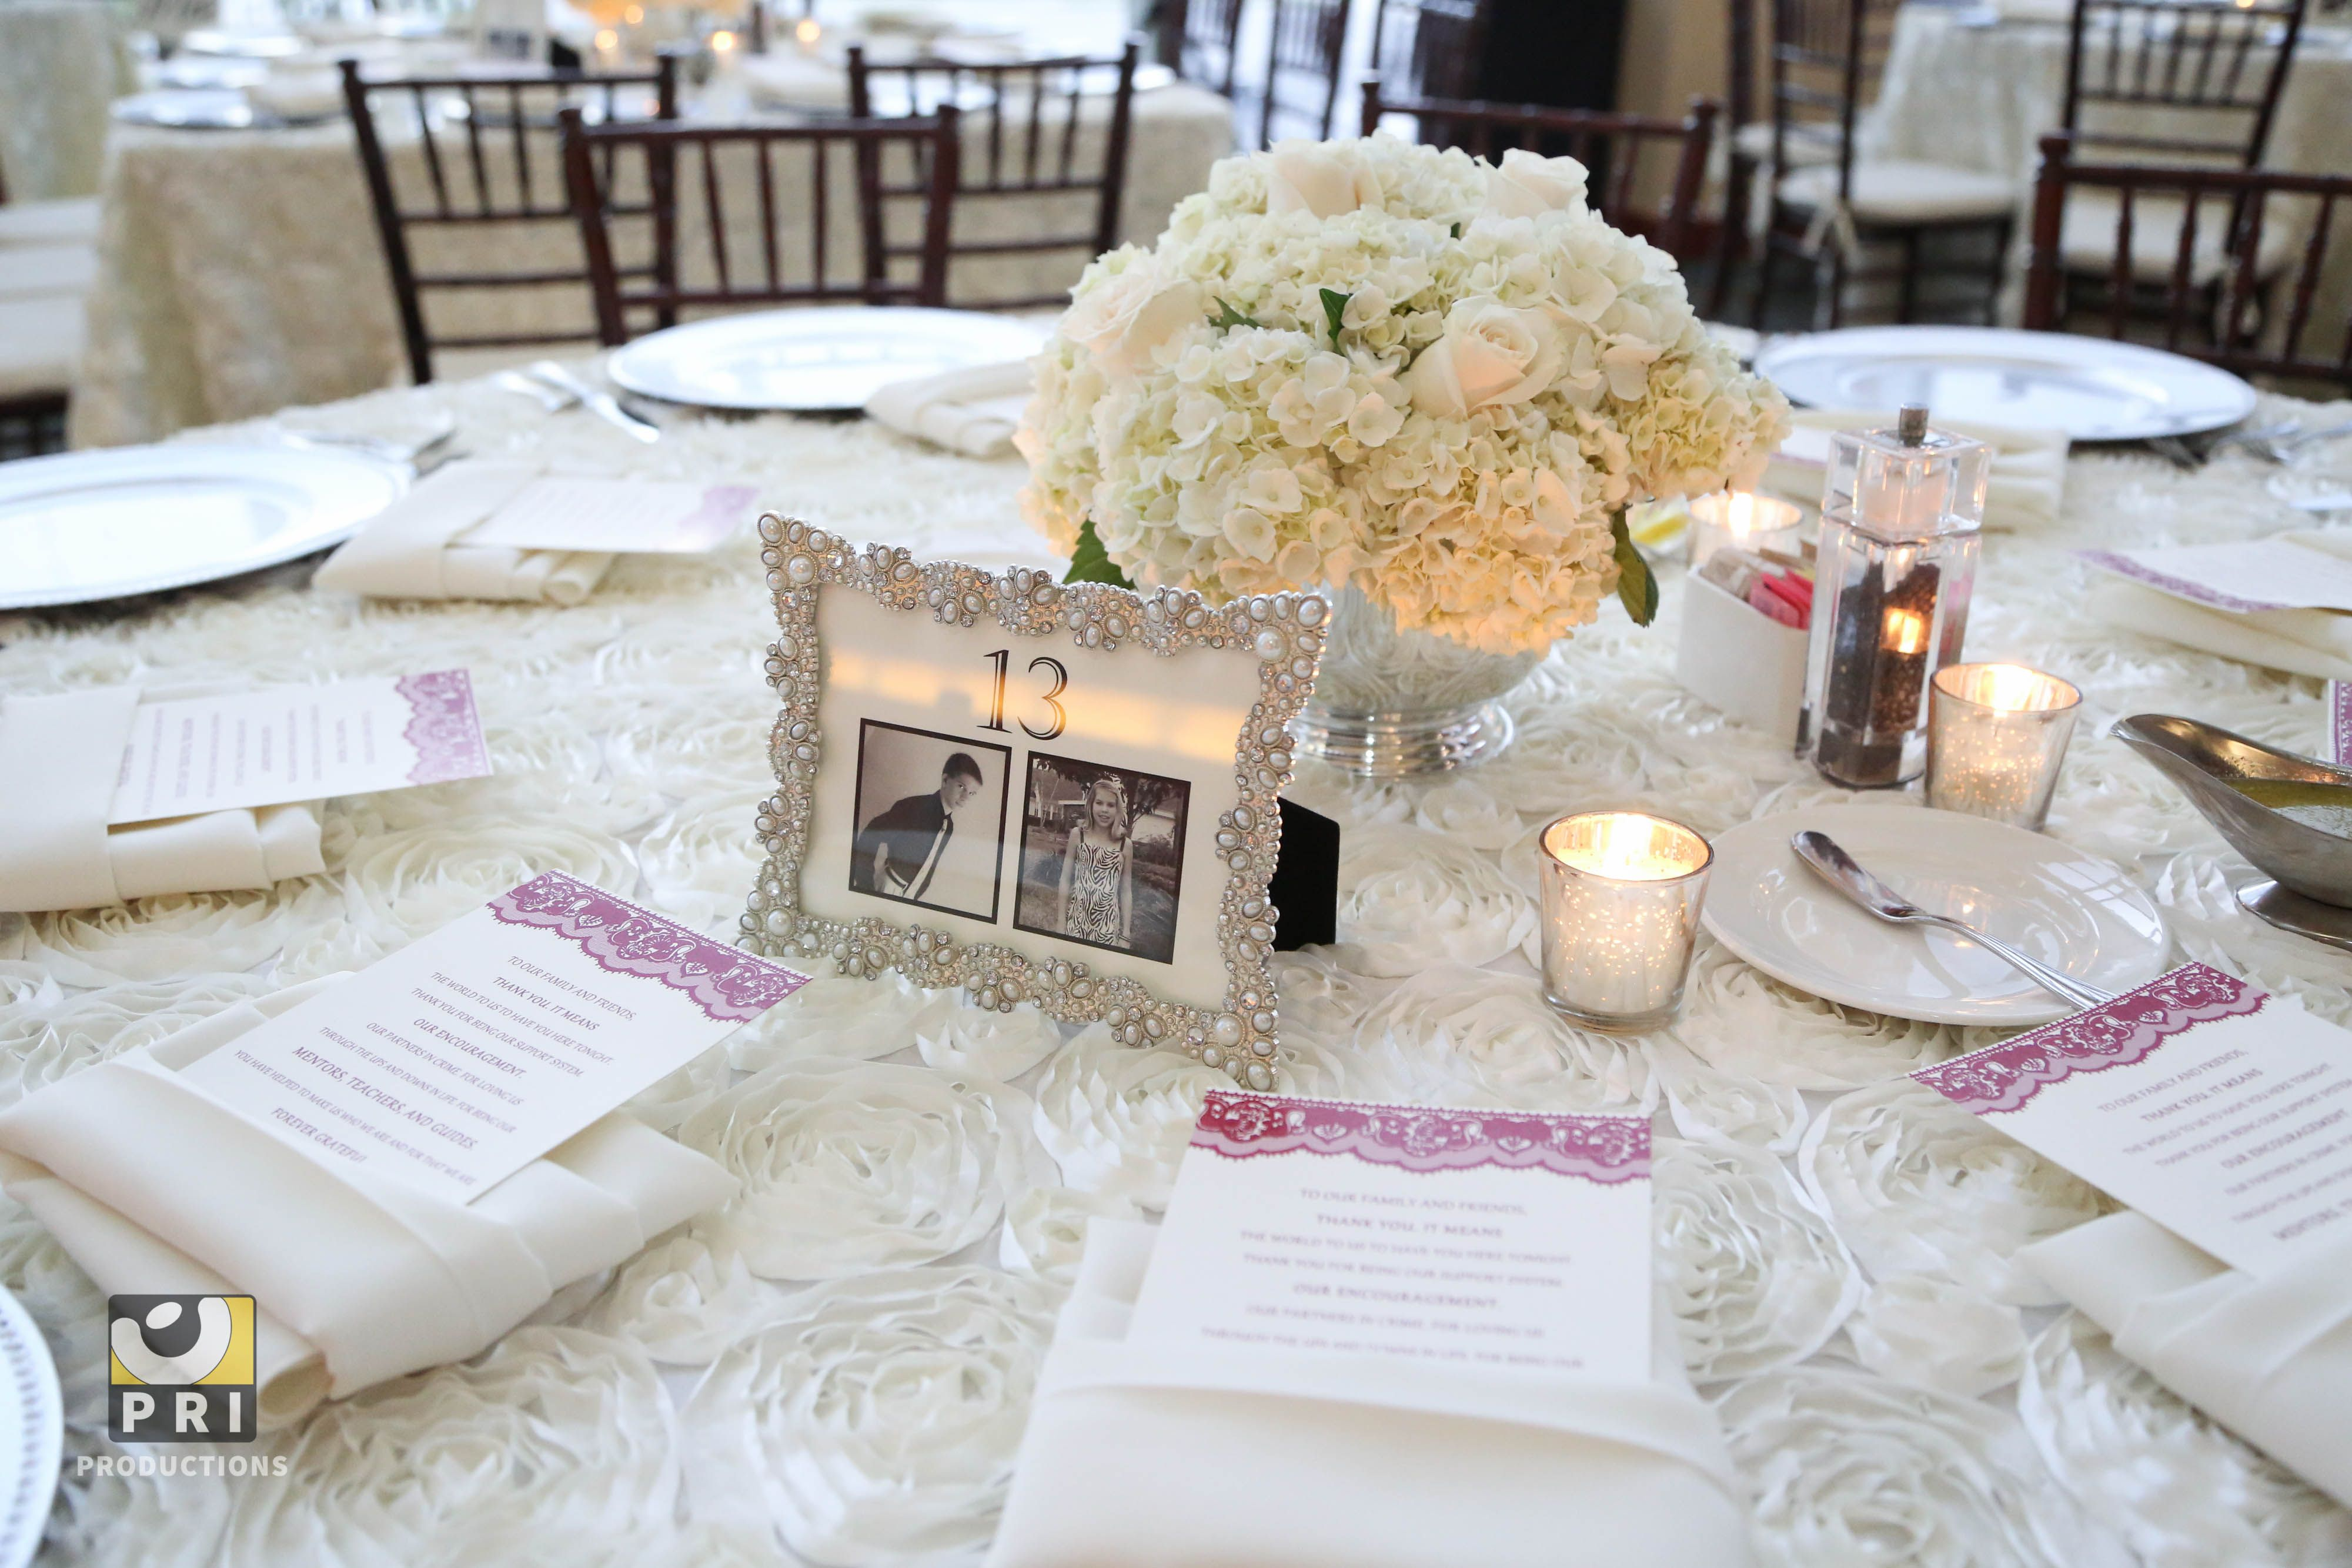 Bride And Groom Wedding Table Ideas glam handcrafted virginia wedding gold tableclothtableclothsbride groom tablereception Table Numbers For A Wedding Reception With Pictures Of The Bride Groom At That Age